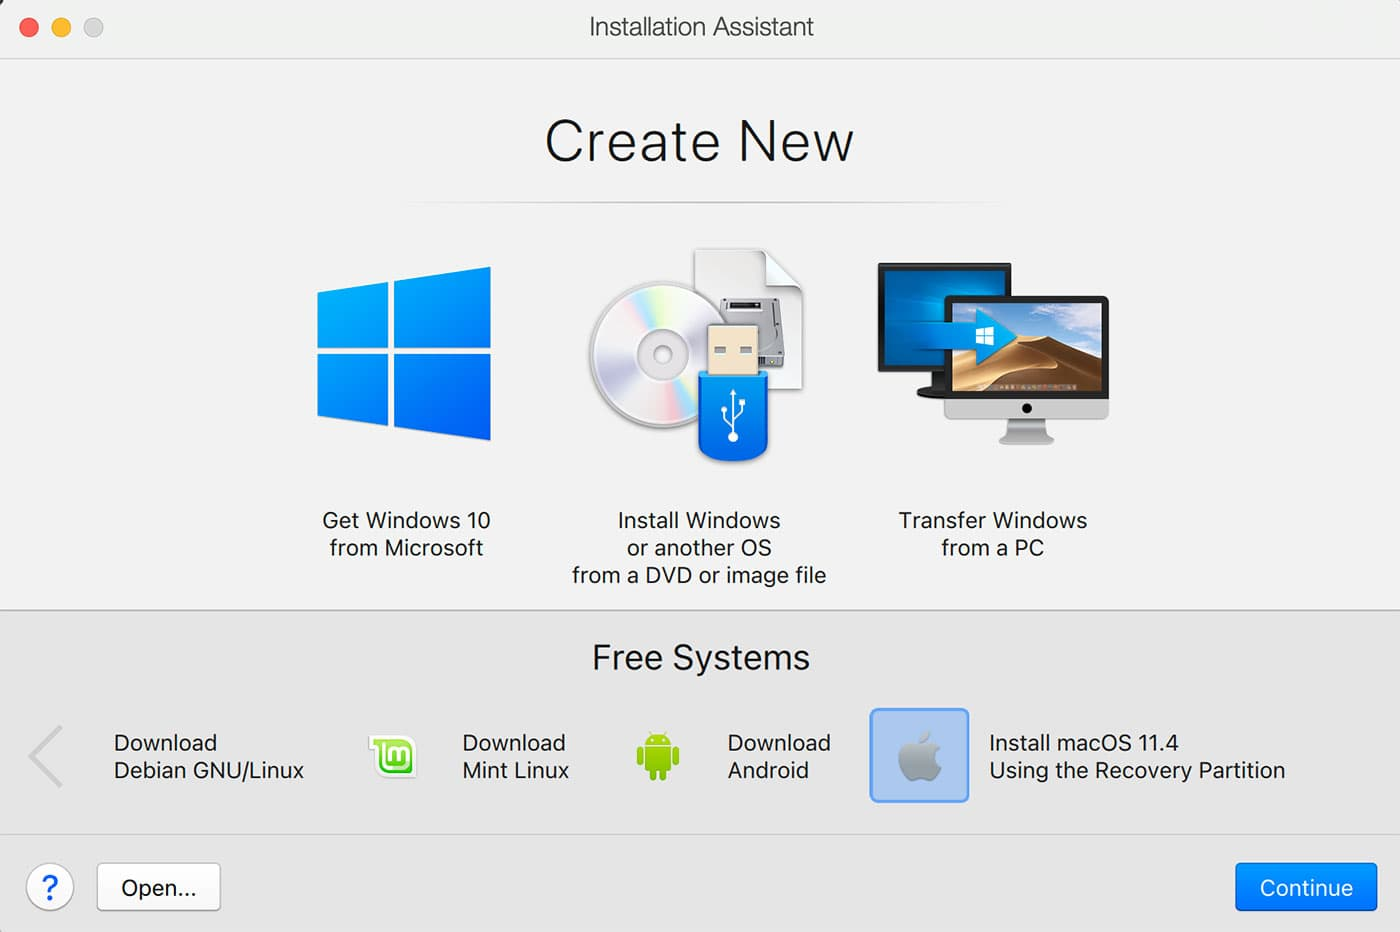 Parallels Desktop Free Systems